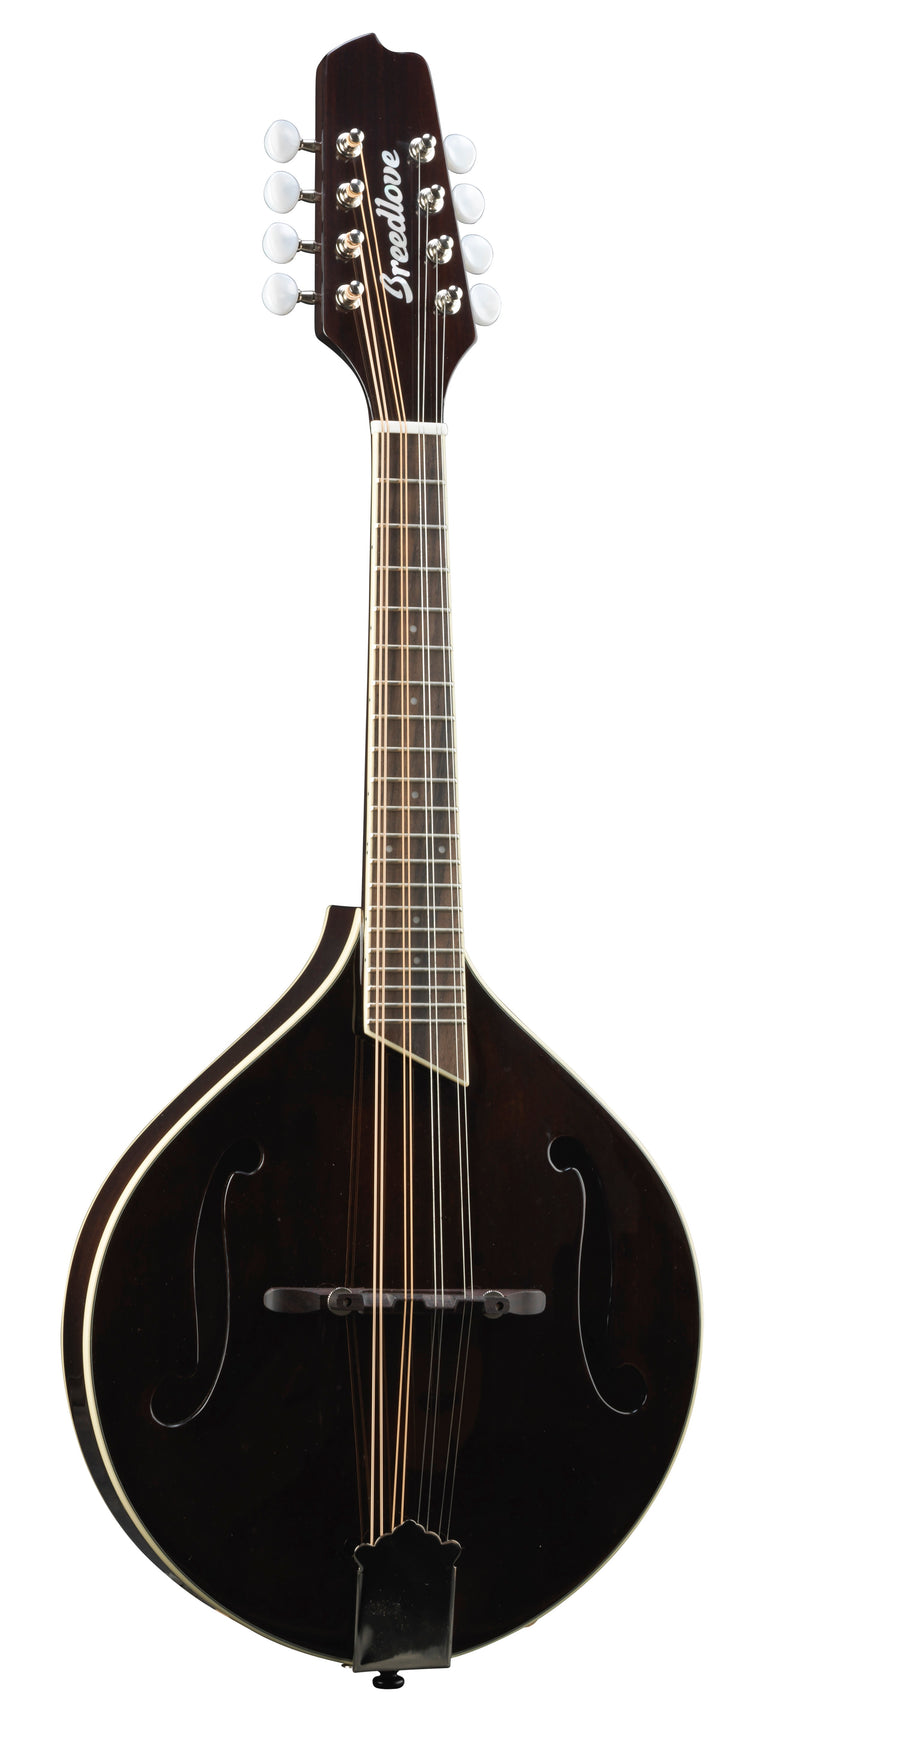 Breedlove Crossover Violin Stain OF Mandolin -Includes Gig Bag -FINAL SALE-